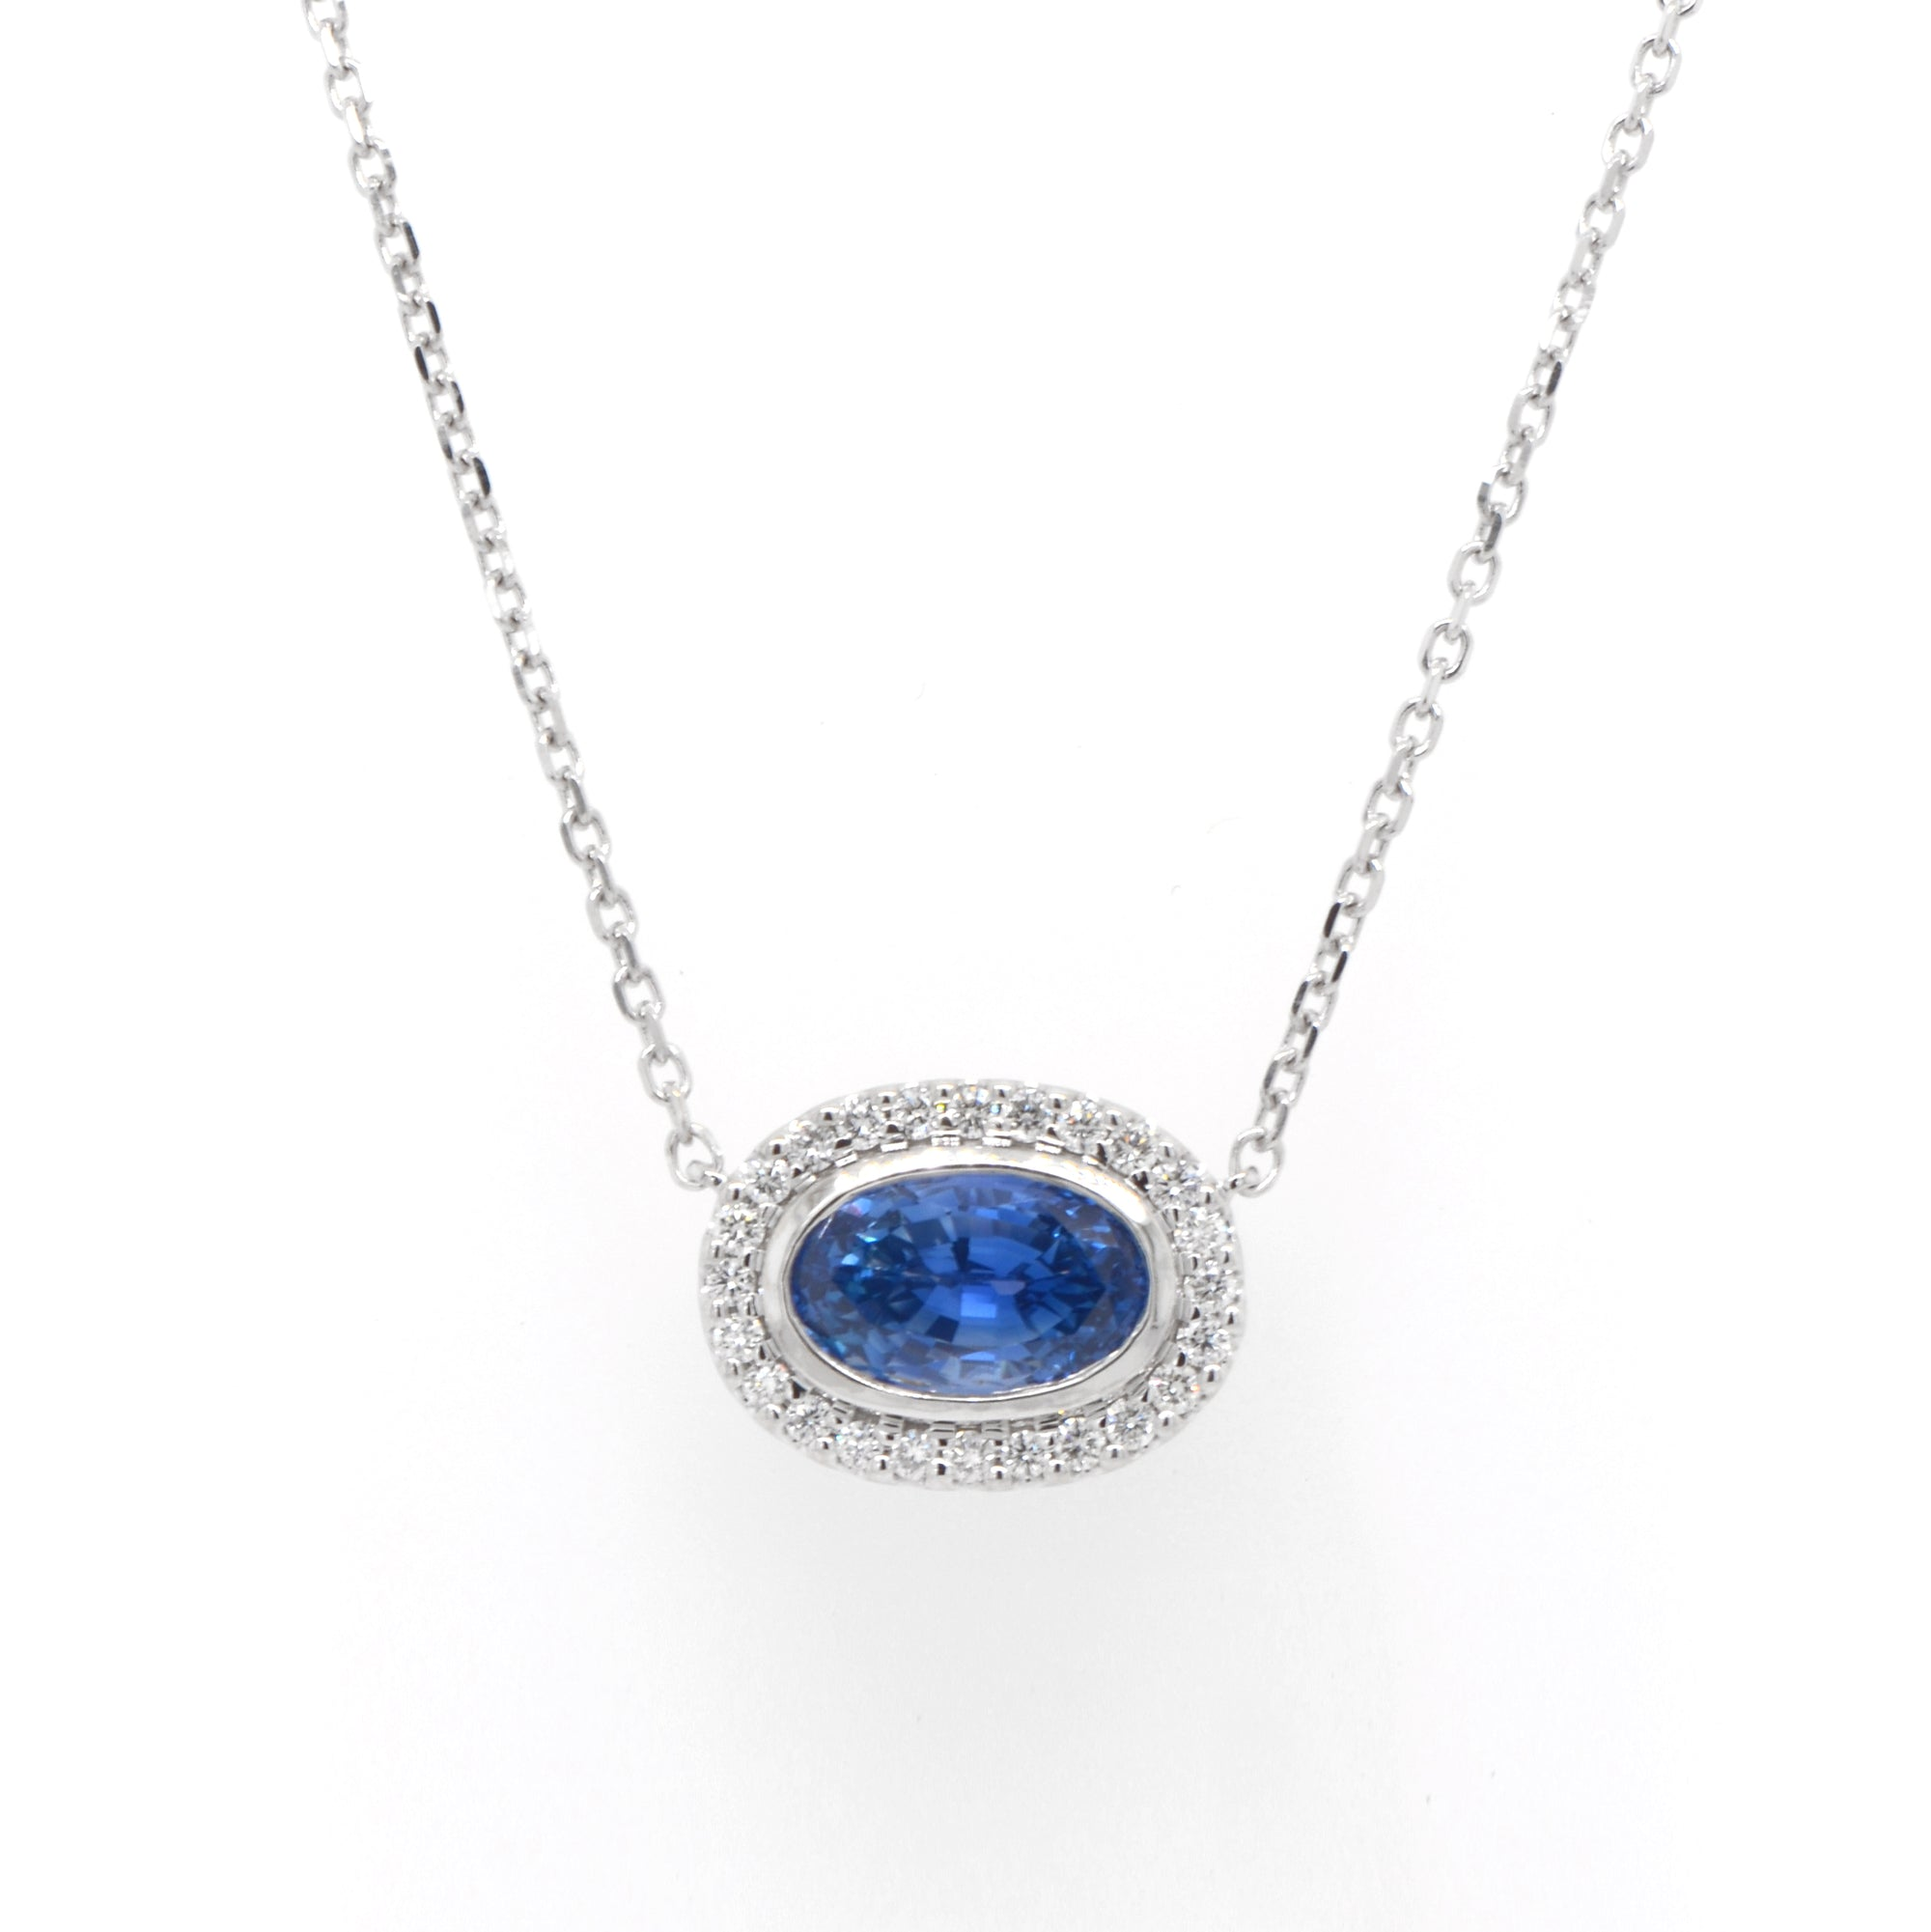 14K white gold sapphire and diamond necklace featuring one 2.90 carat oval blue sapphire set East-West in a diamond halo (0.24ctw).